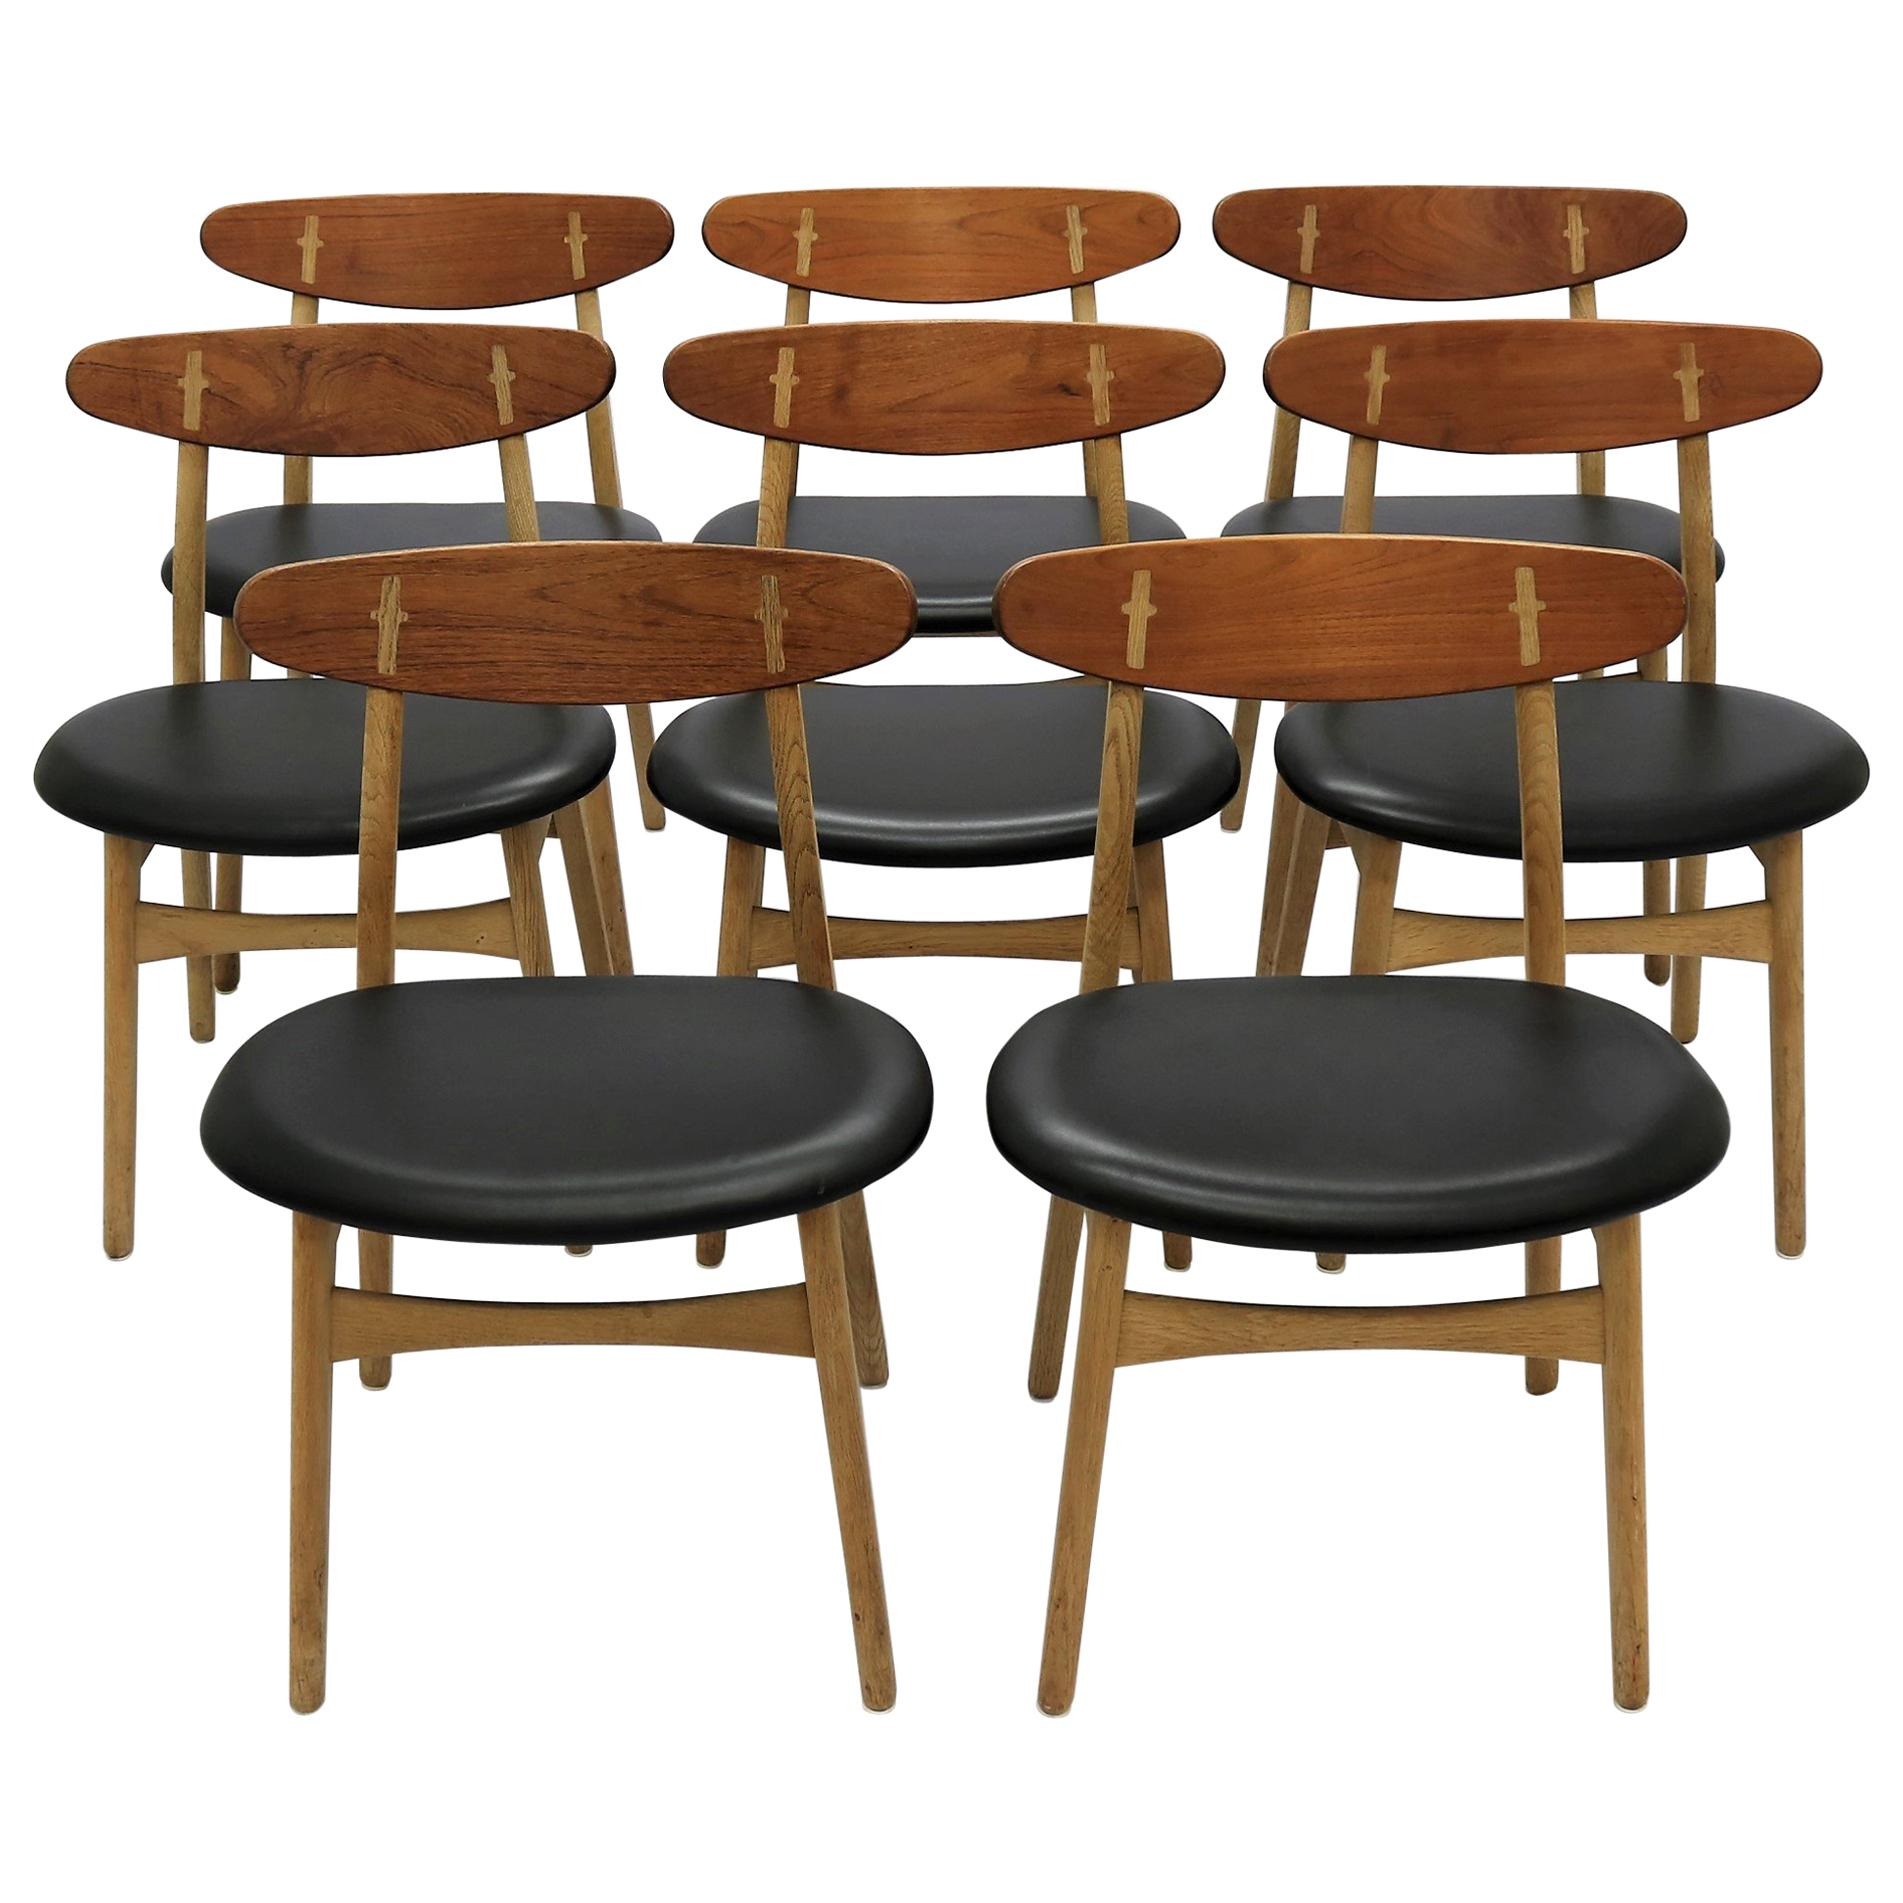 Antique Vintage Mid Century And Modern Furniture 498 530 For